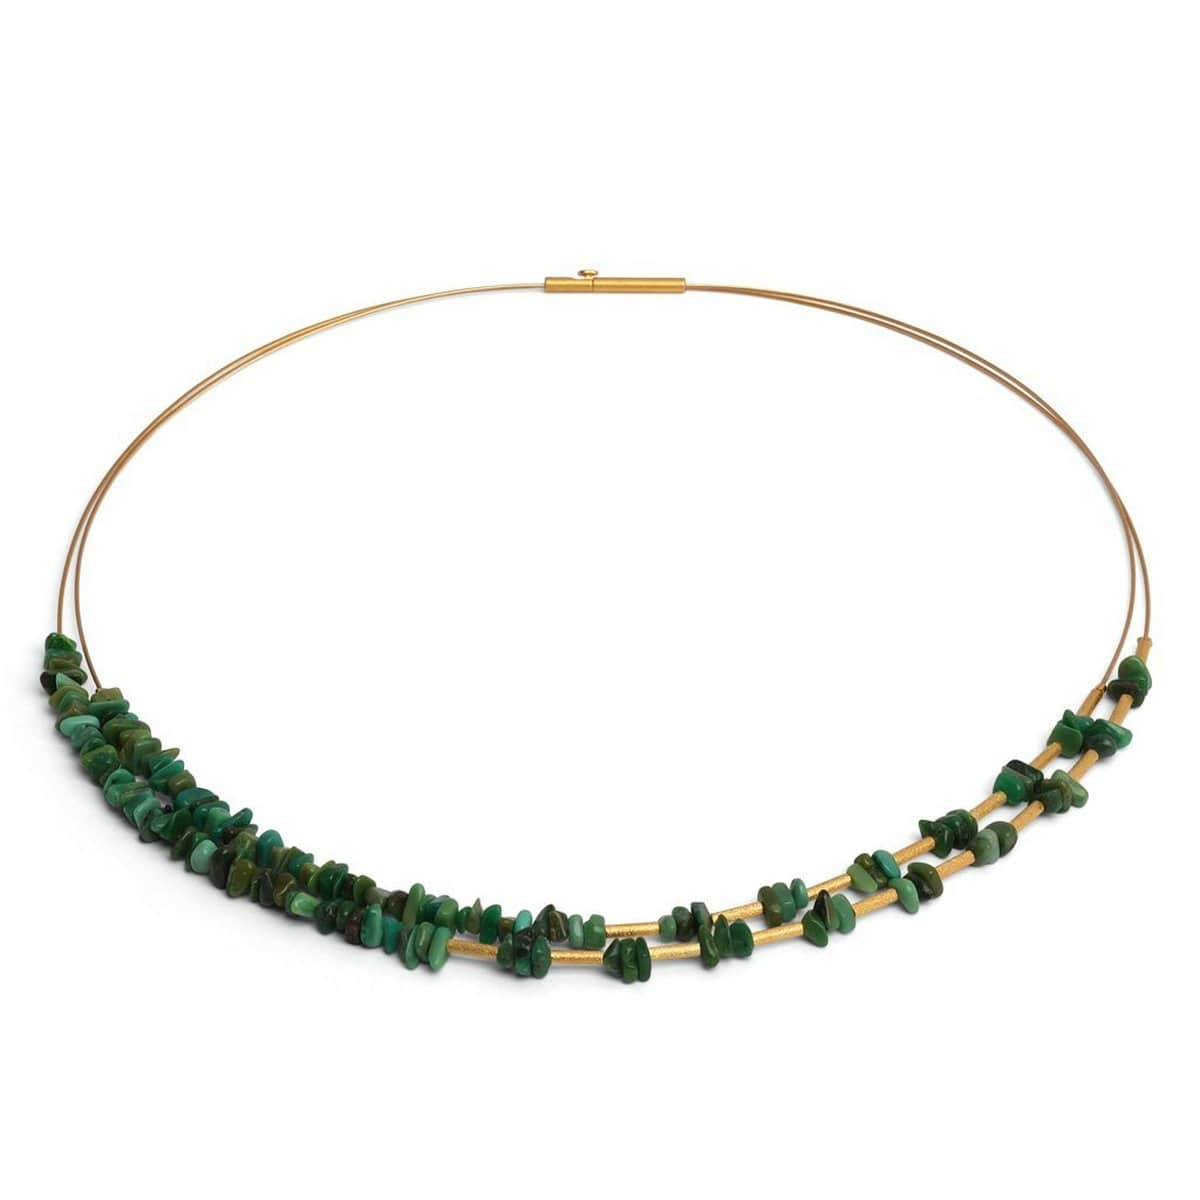 Chipas Green Turquoise Necklace - 85374356-Bernd Wolf-Renee Taylor Gallery